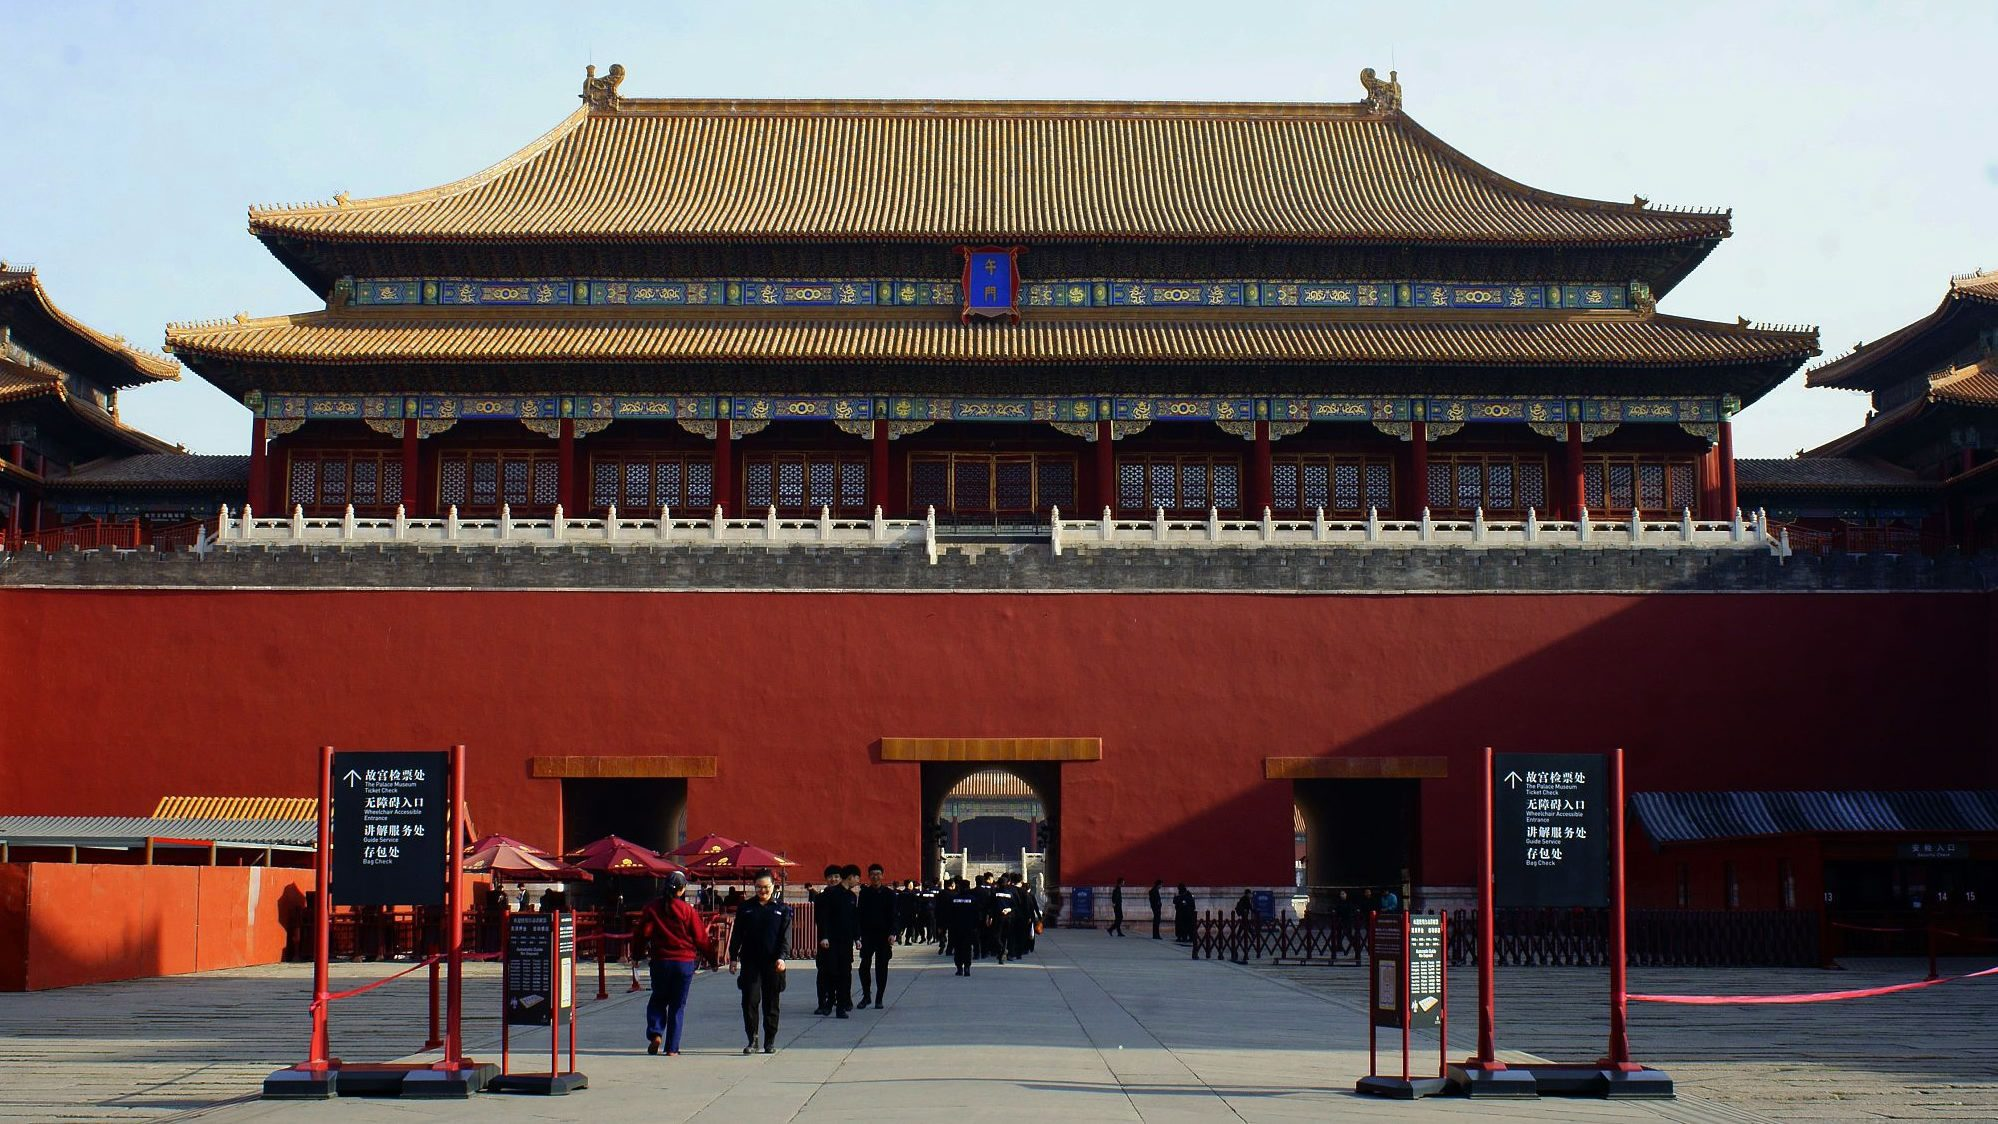 China's Forbidden City on live broadcast amid COVID-19 pandemic